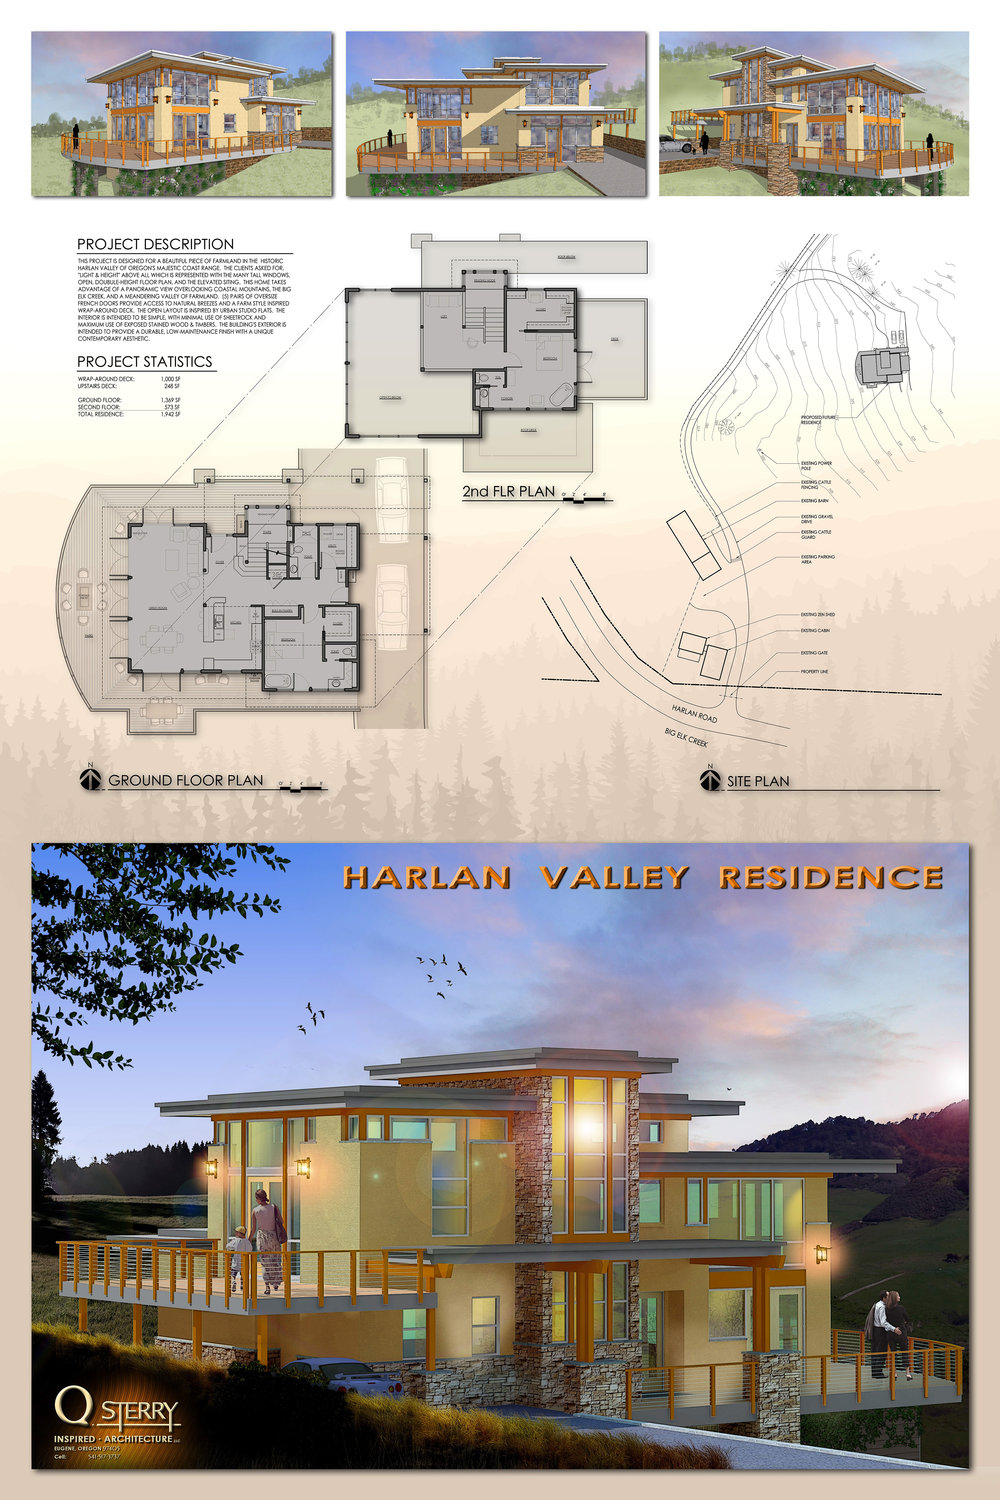 29_harlan_valley_residence_-_pca_-_unbuilt_category.jpg